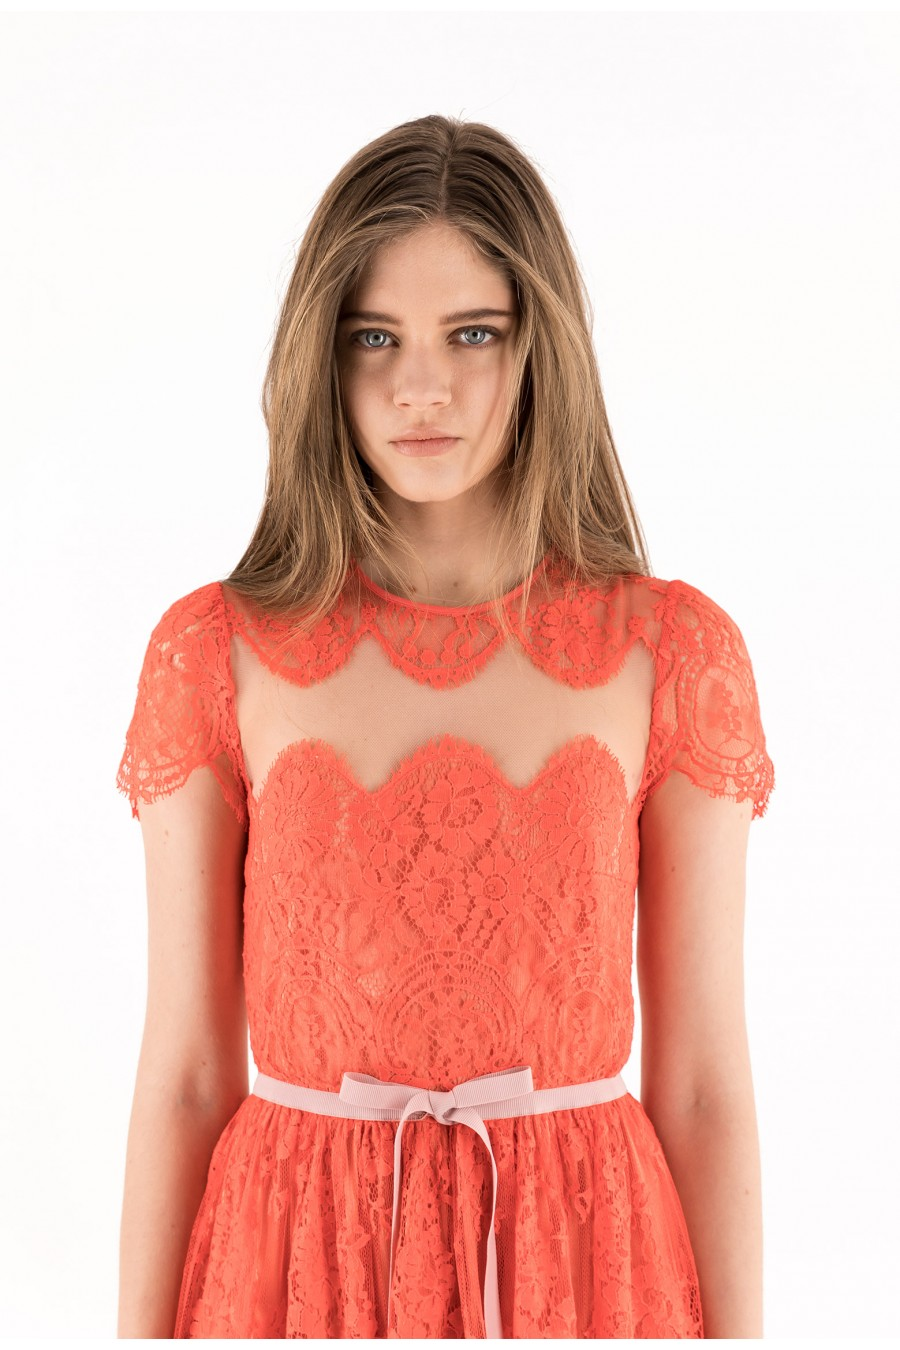 Red valenciennes lace dress